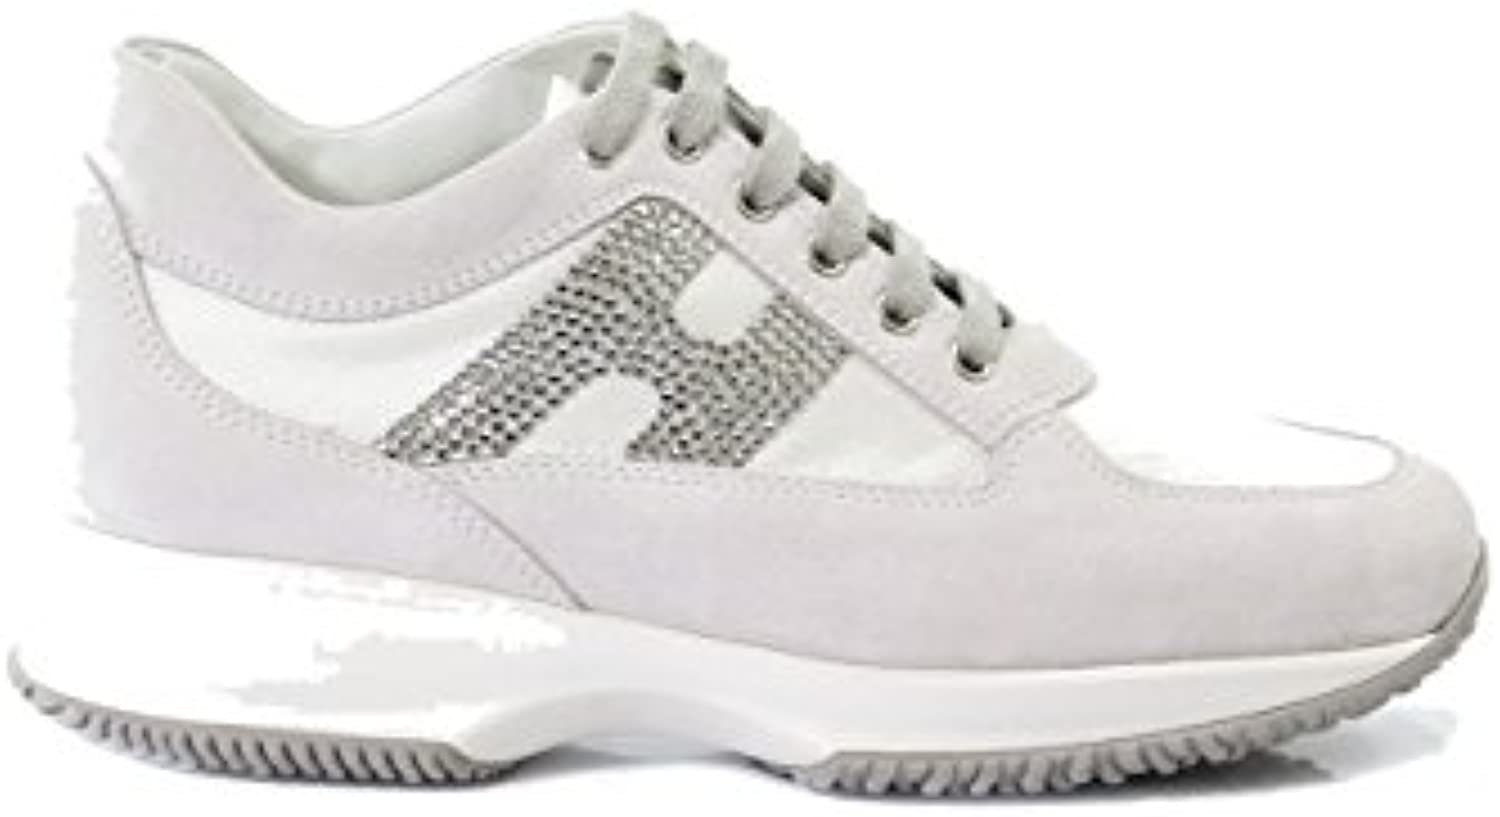 Hogan Shoes With Parent Nhta 30295 Strass Womens B0797smwq2 Flash  Olivia Sneakers Ivory 38 0df3e09